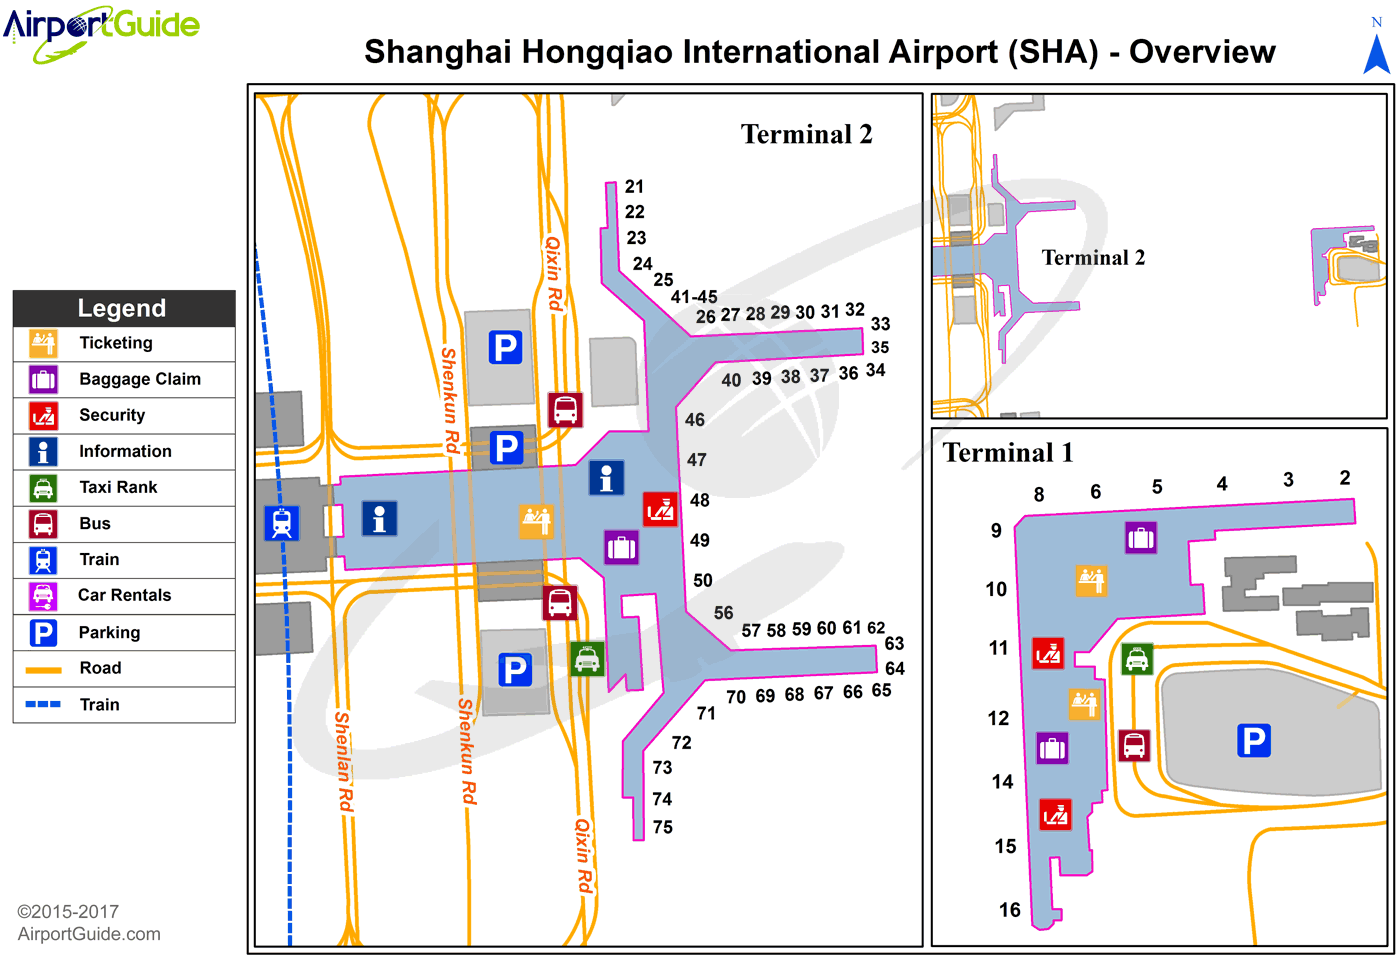 Shanghai - Shanghai Hongqiao International (SHA) Airport Terminal Map - Overview